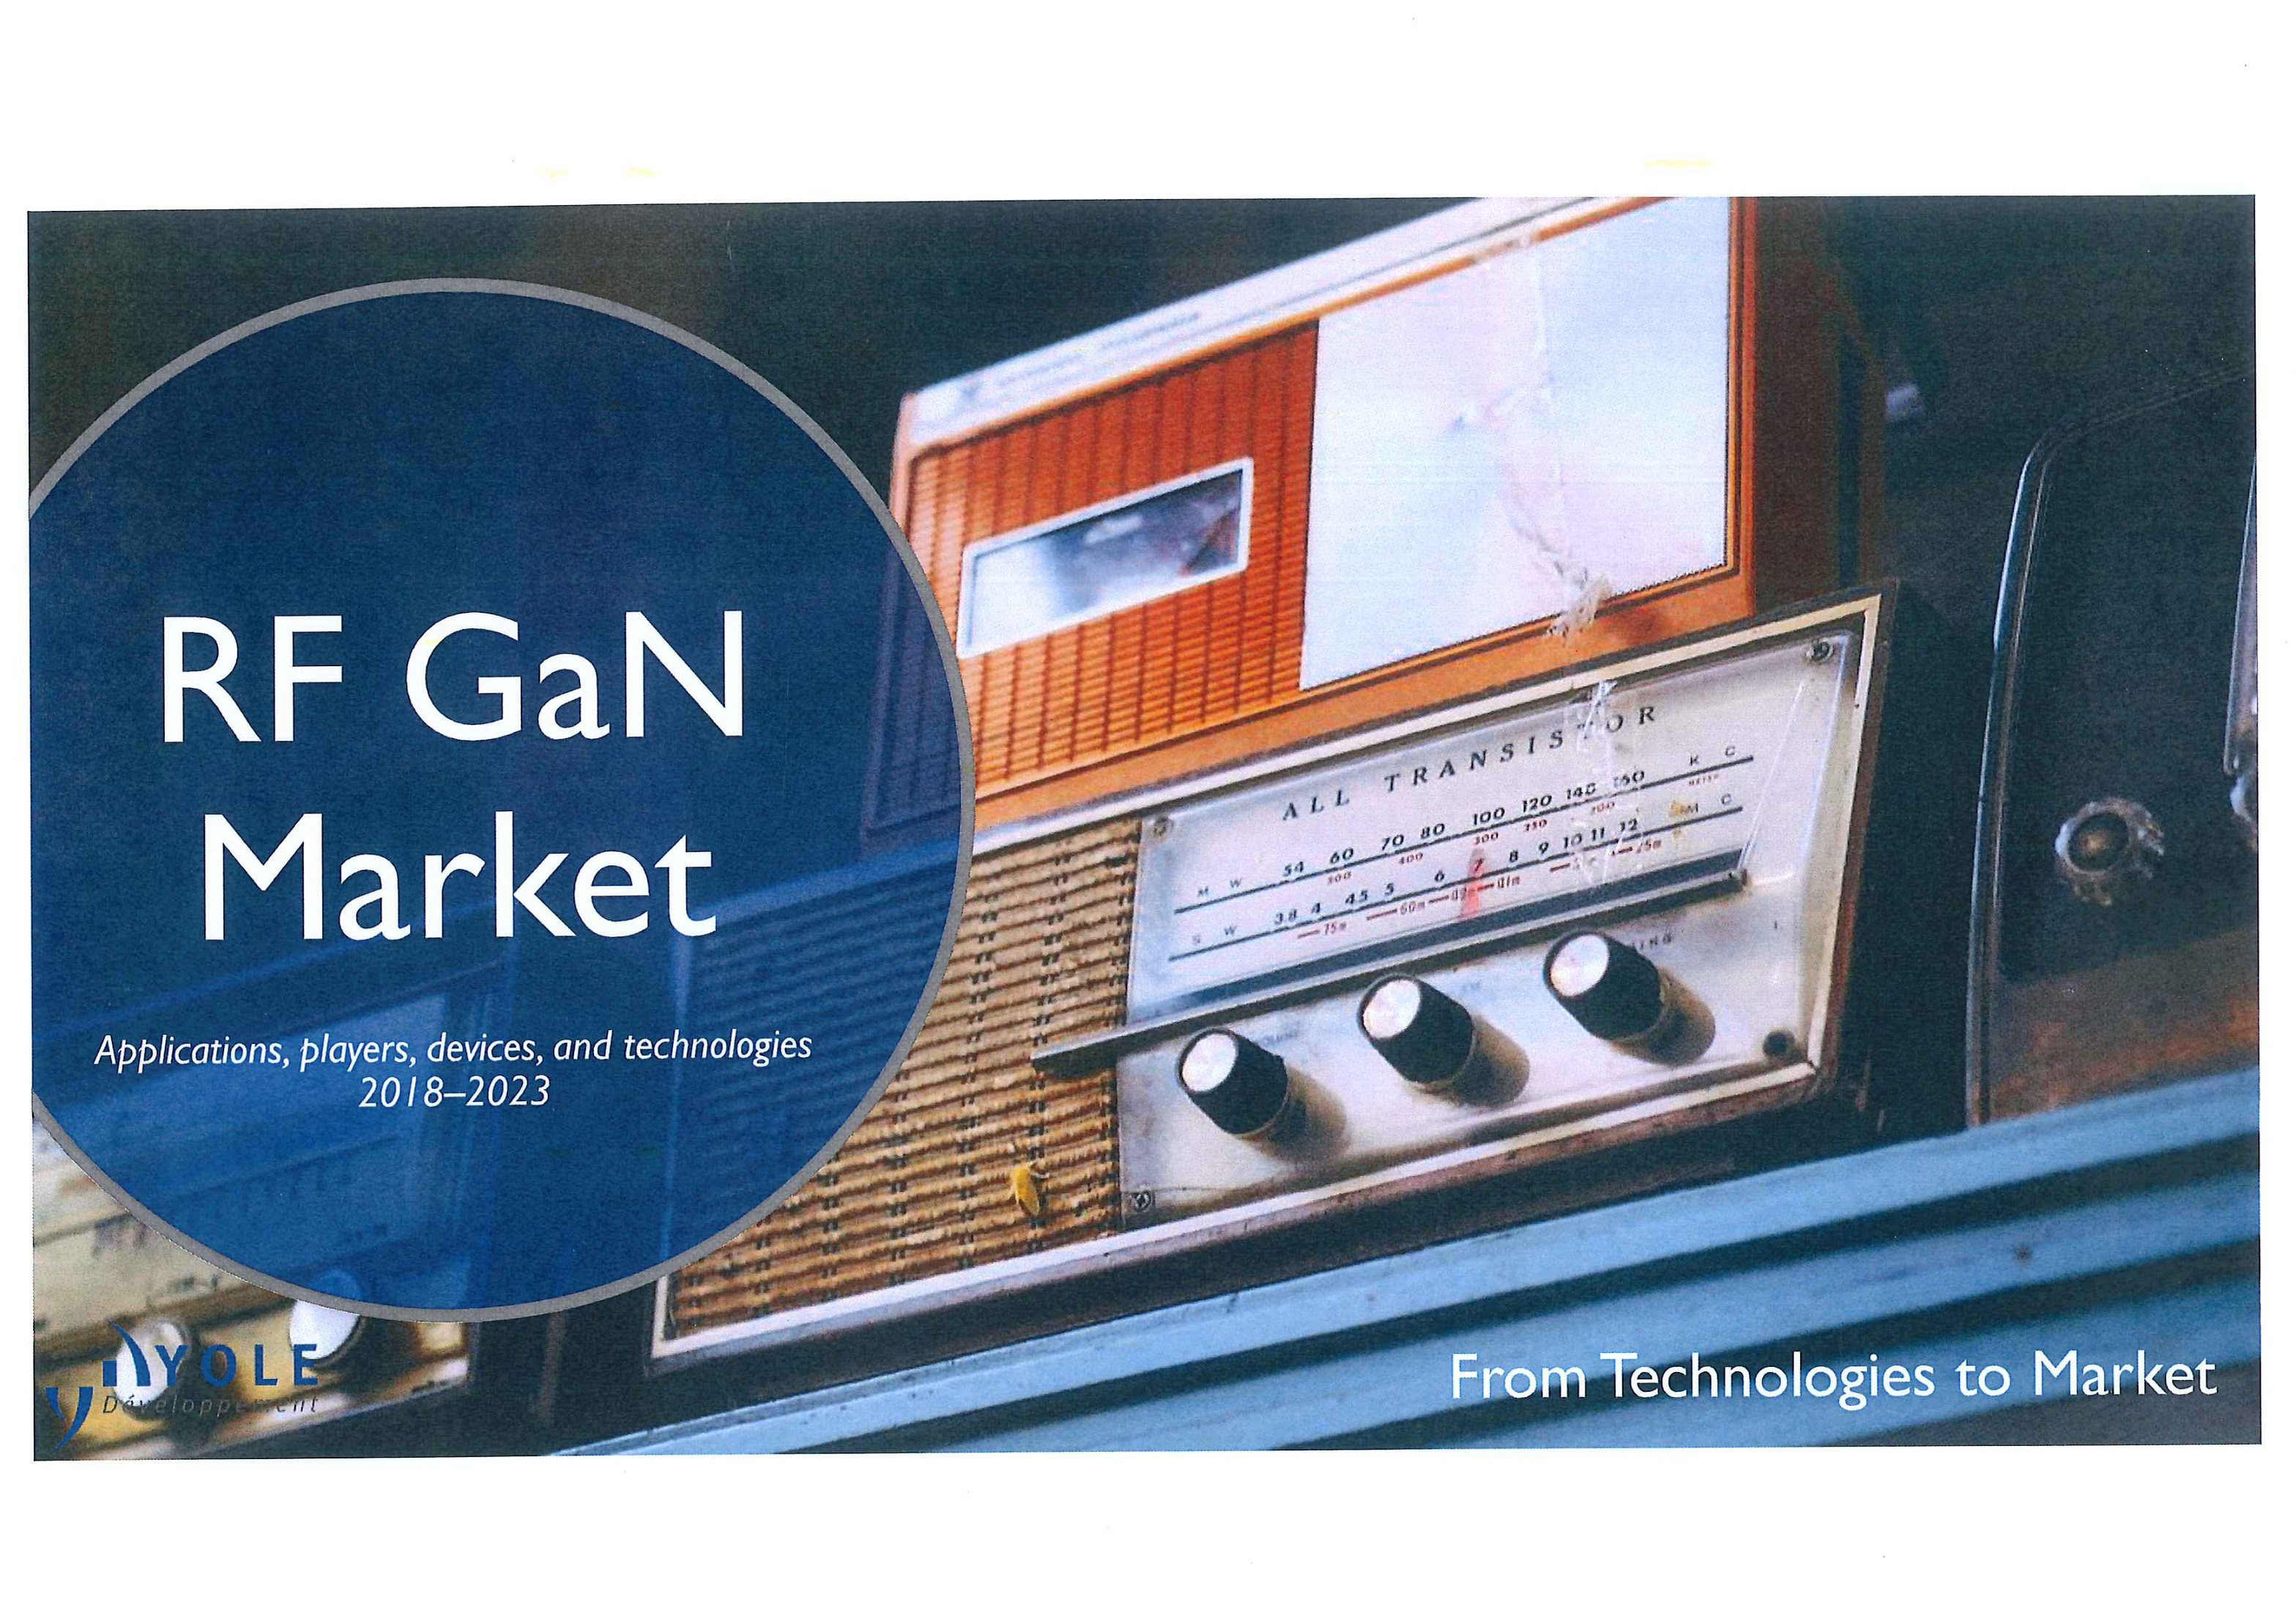 RF GaN market [e-book]:applications, players, devices, and technologies 2018-2023:from technologies to market